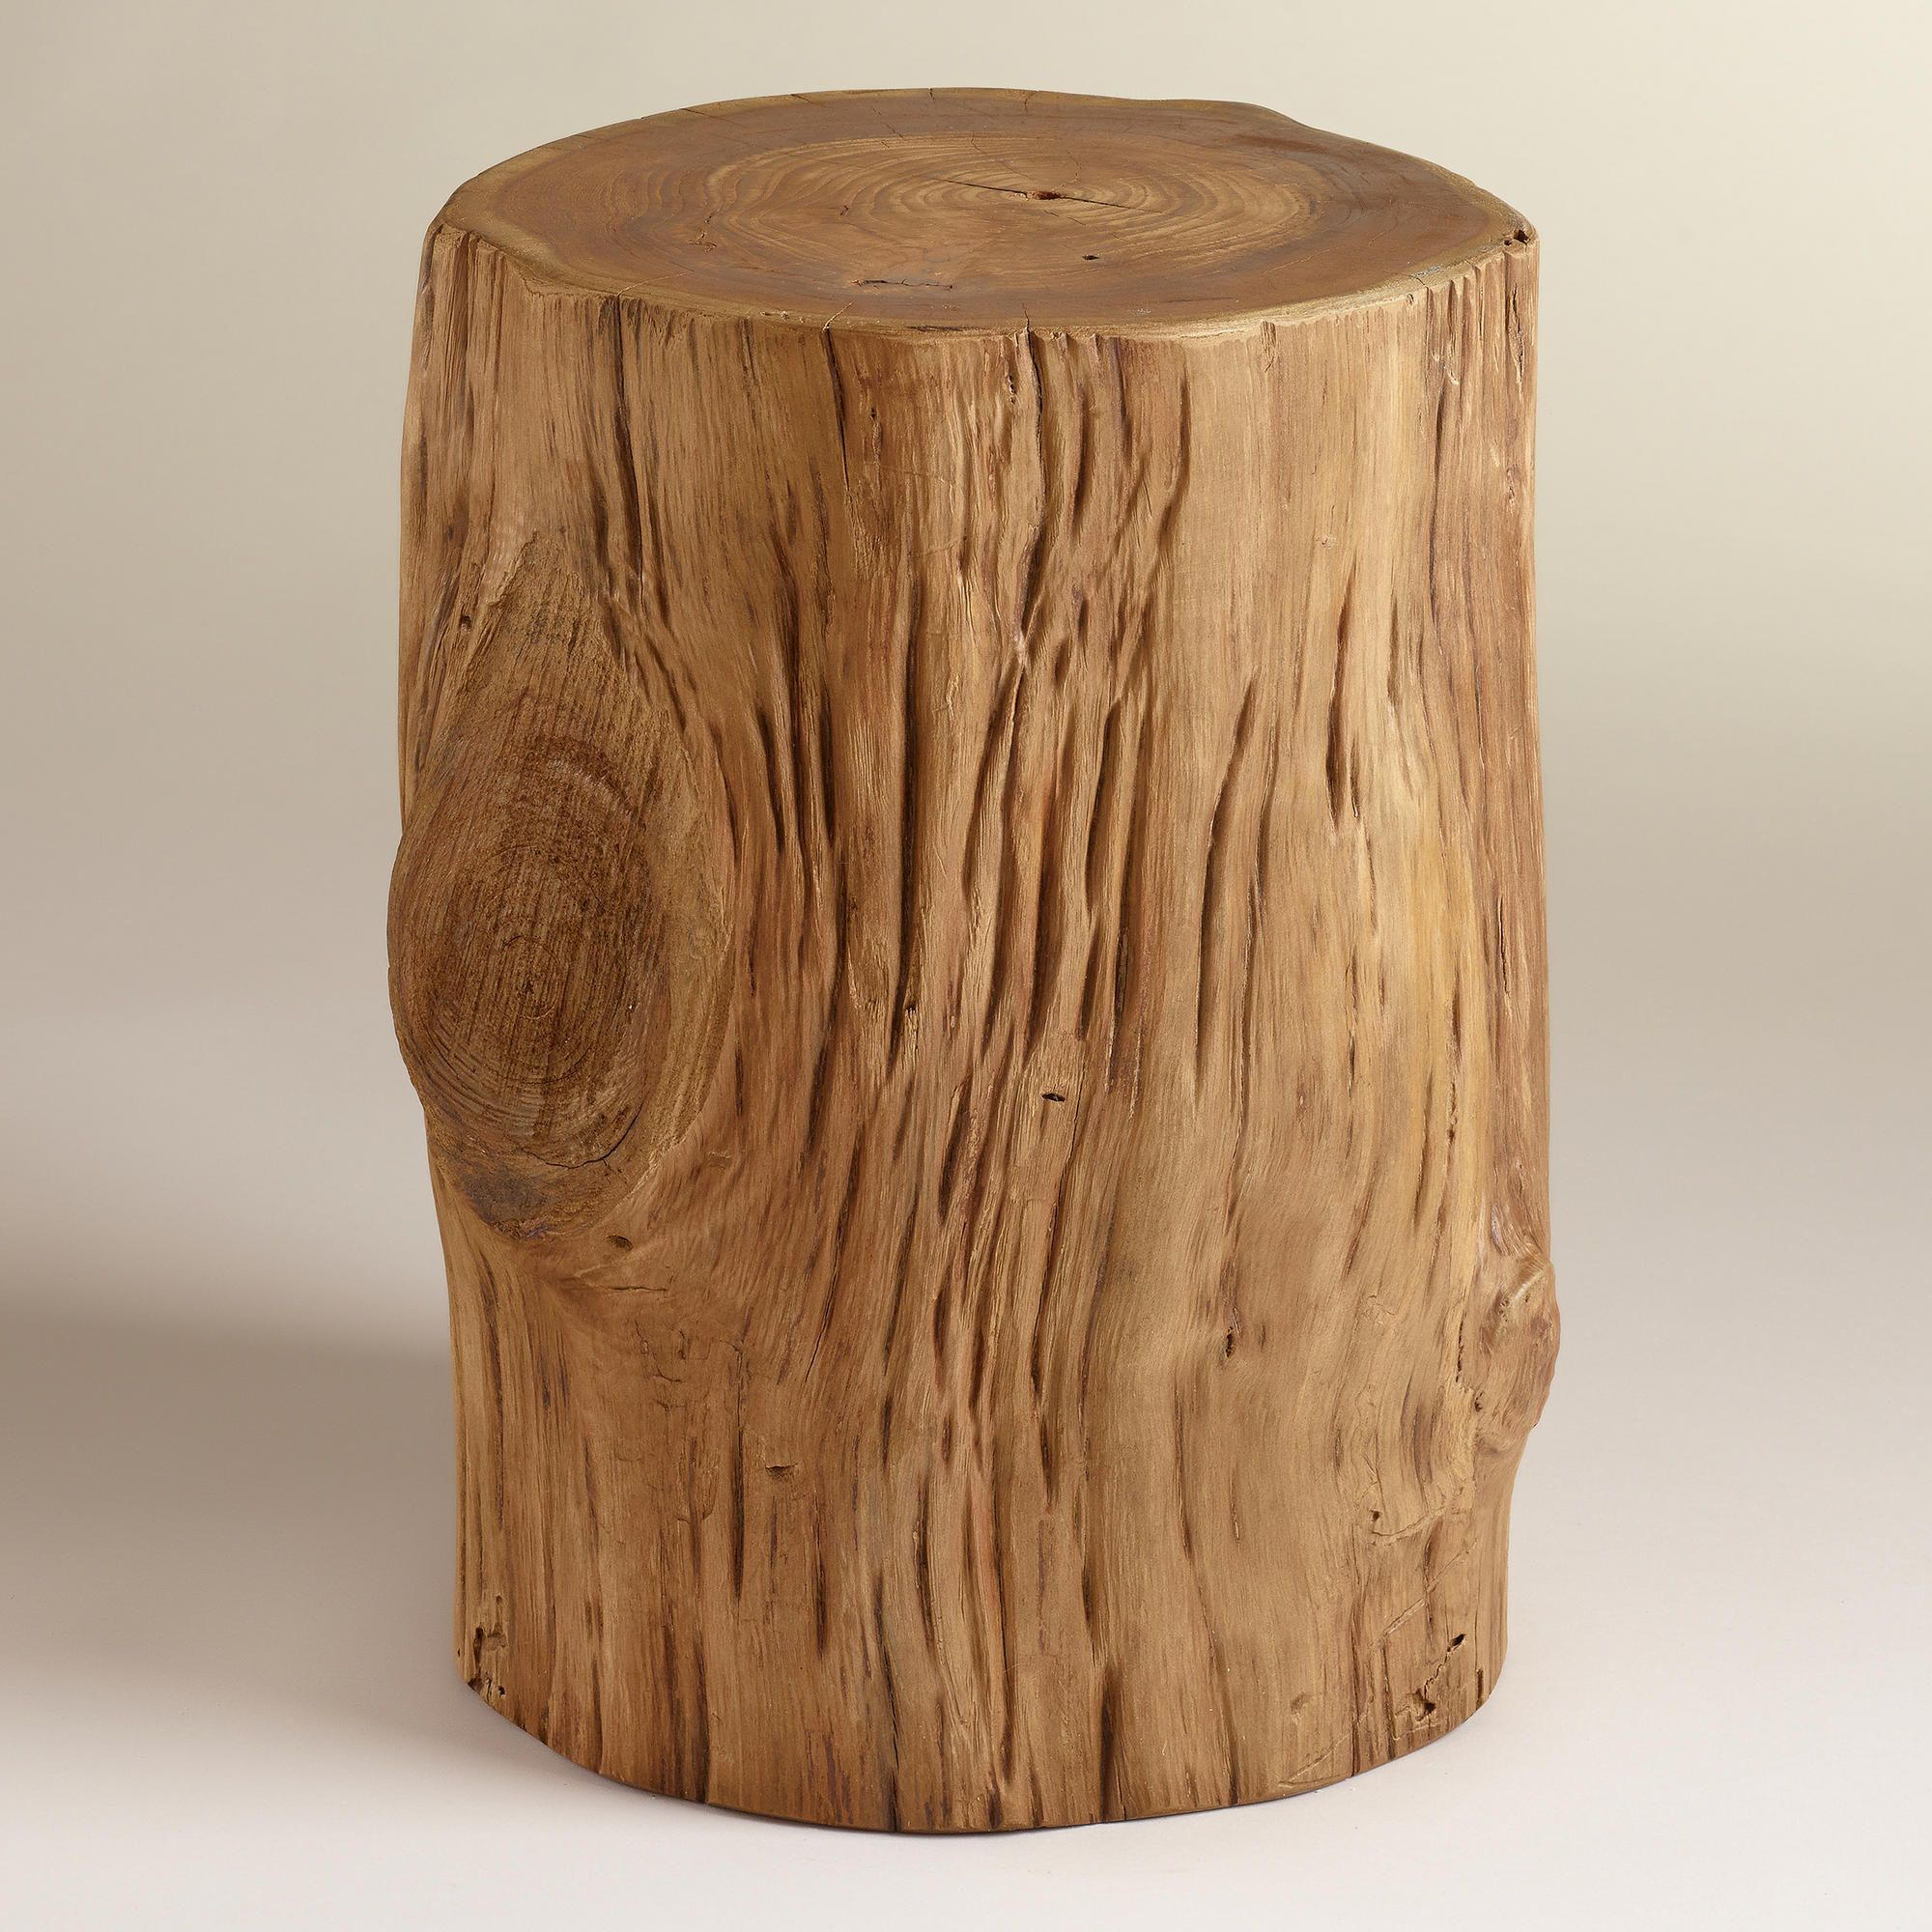 17 Best images about Tree Stump Table on Pinterest | Stump table ...